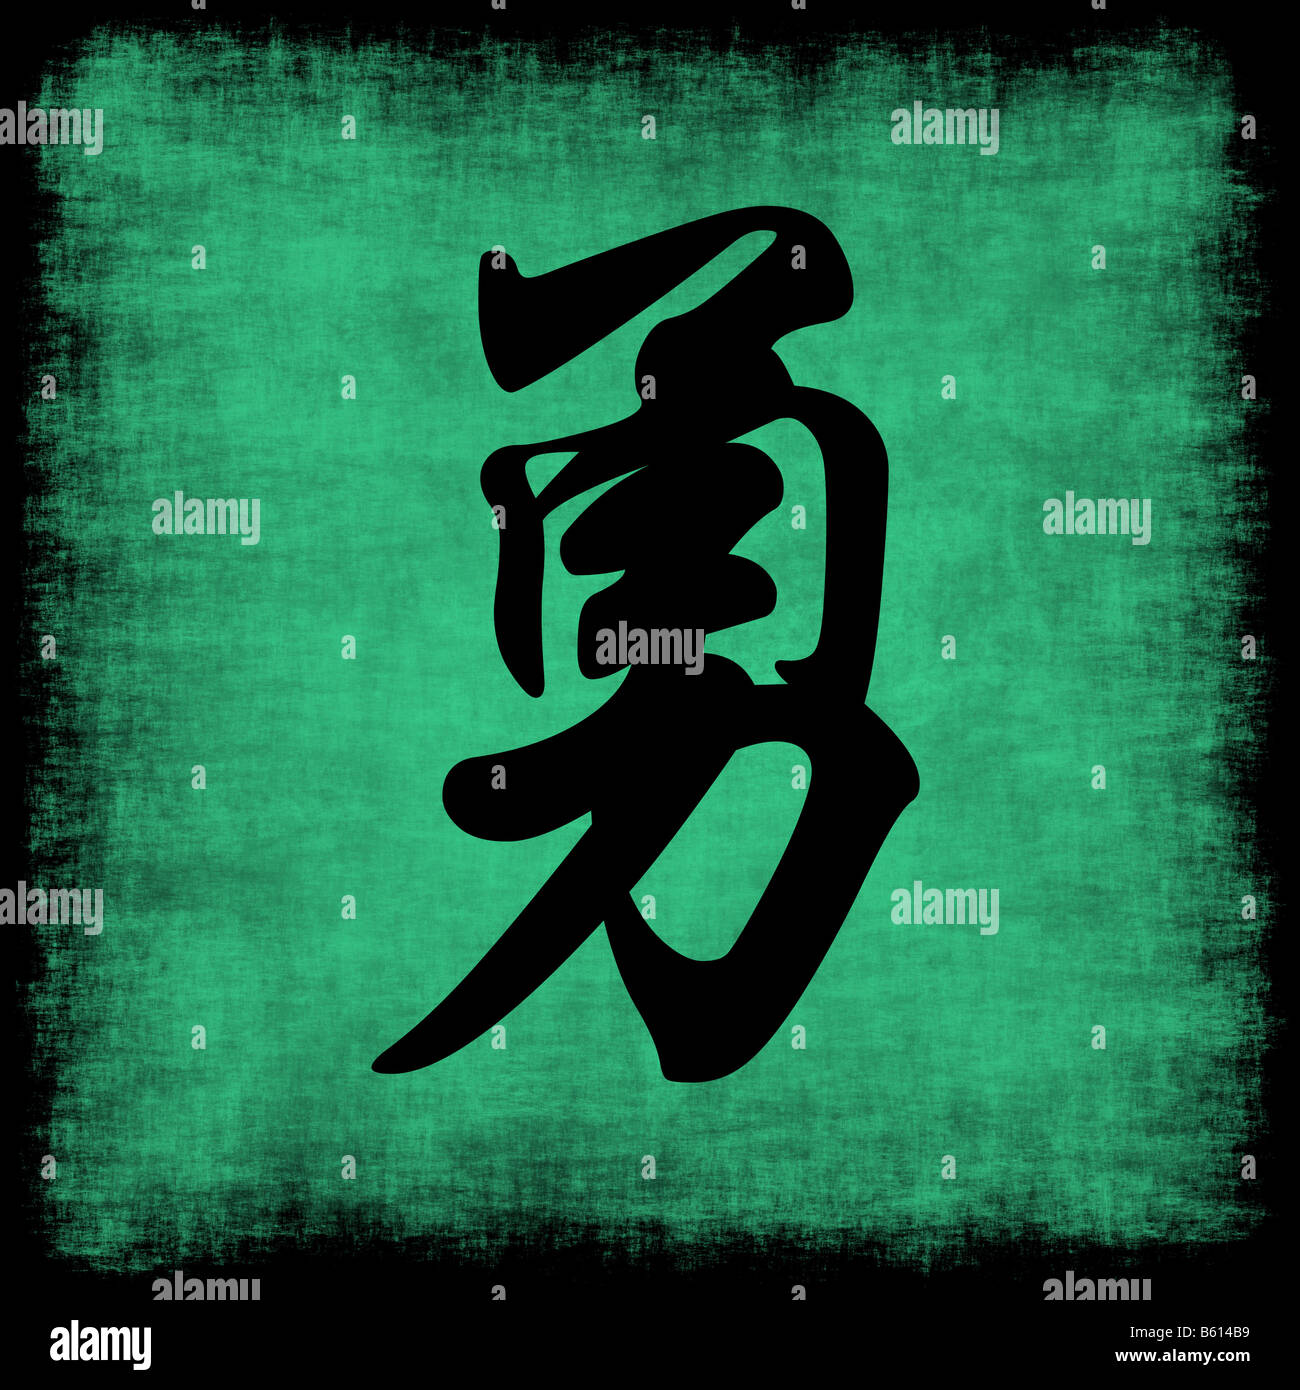 Courage chinese calligraphy symbol grunge background set stock courage chinese calligraphy symbol grunge background set biocorpaavc Image collections